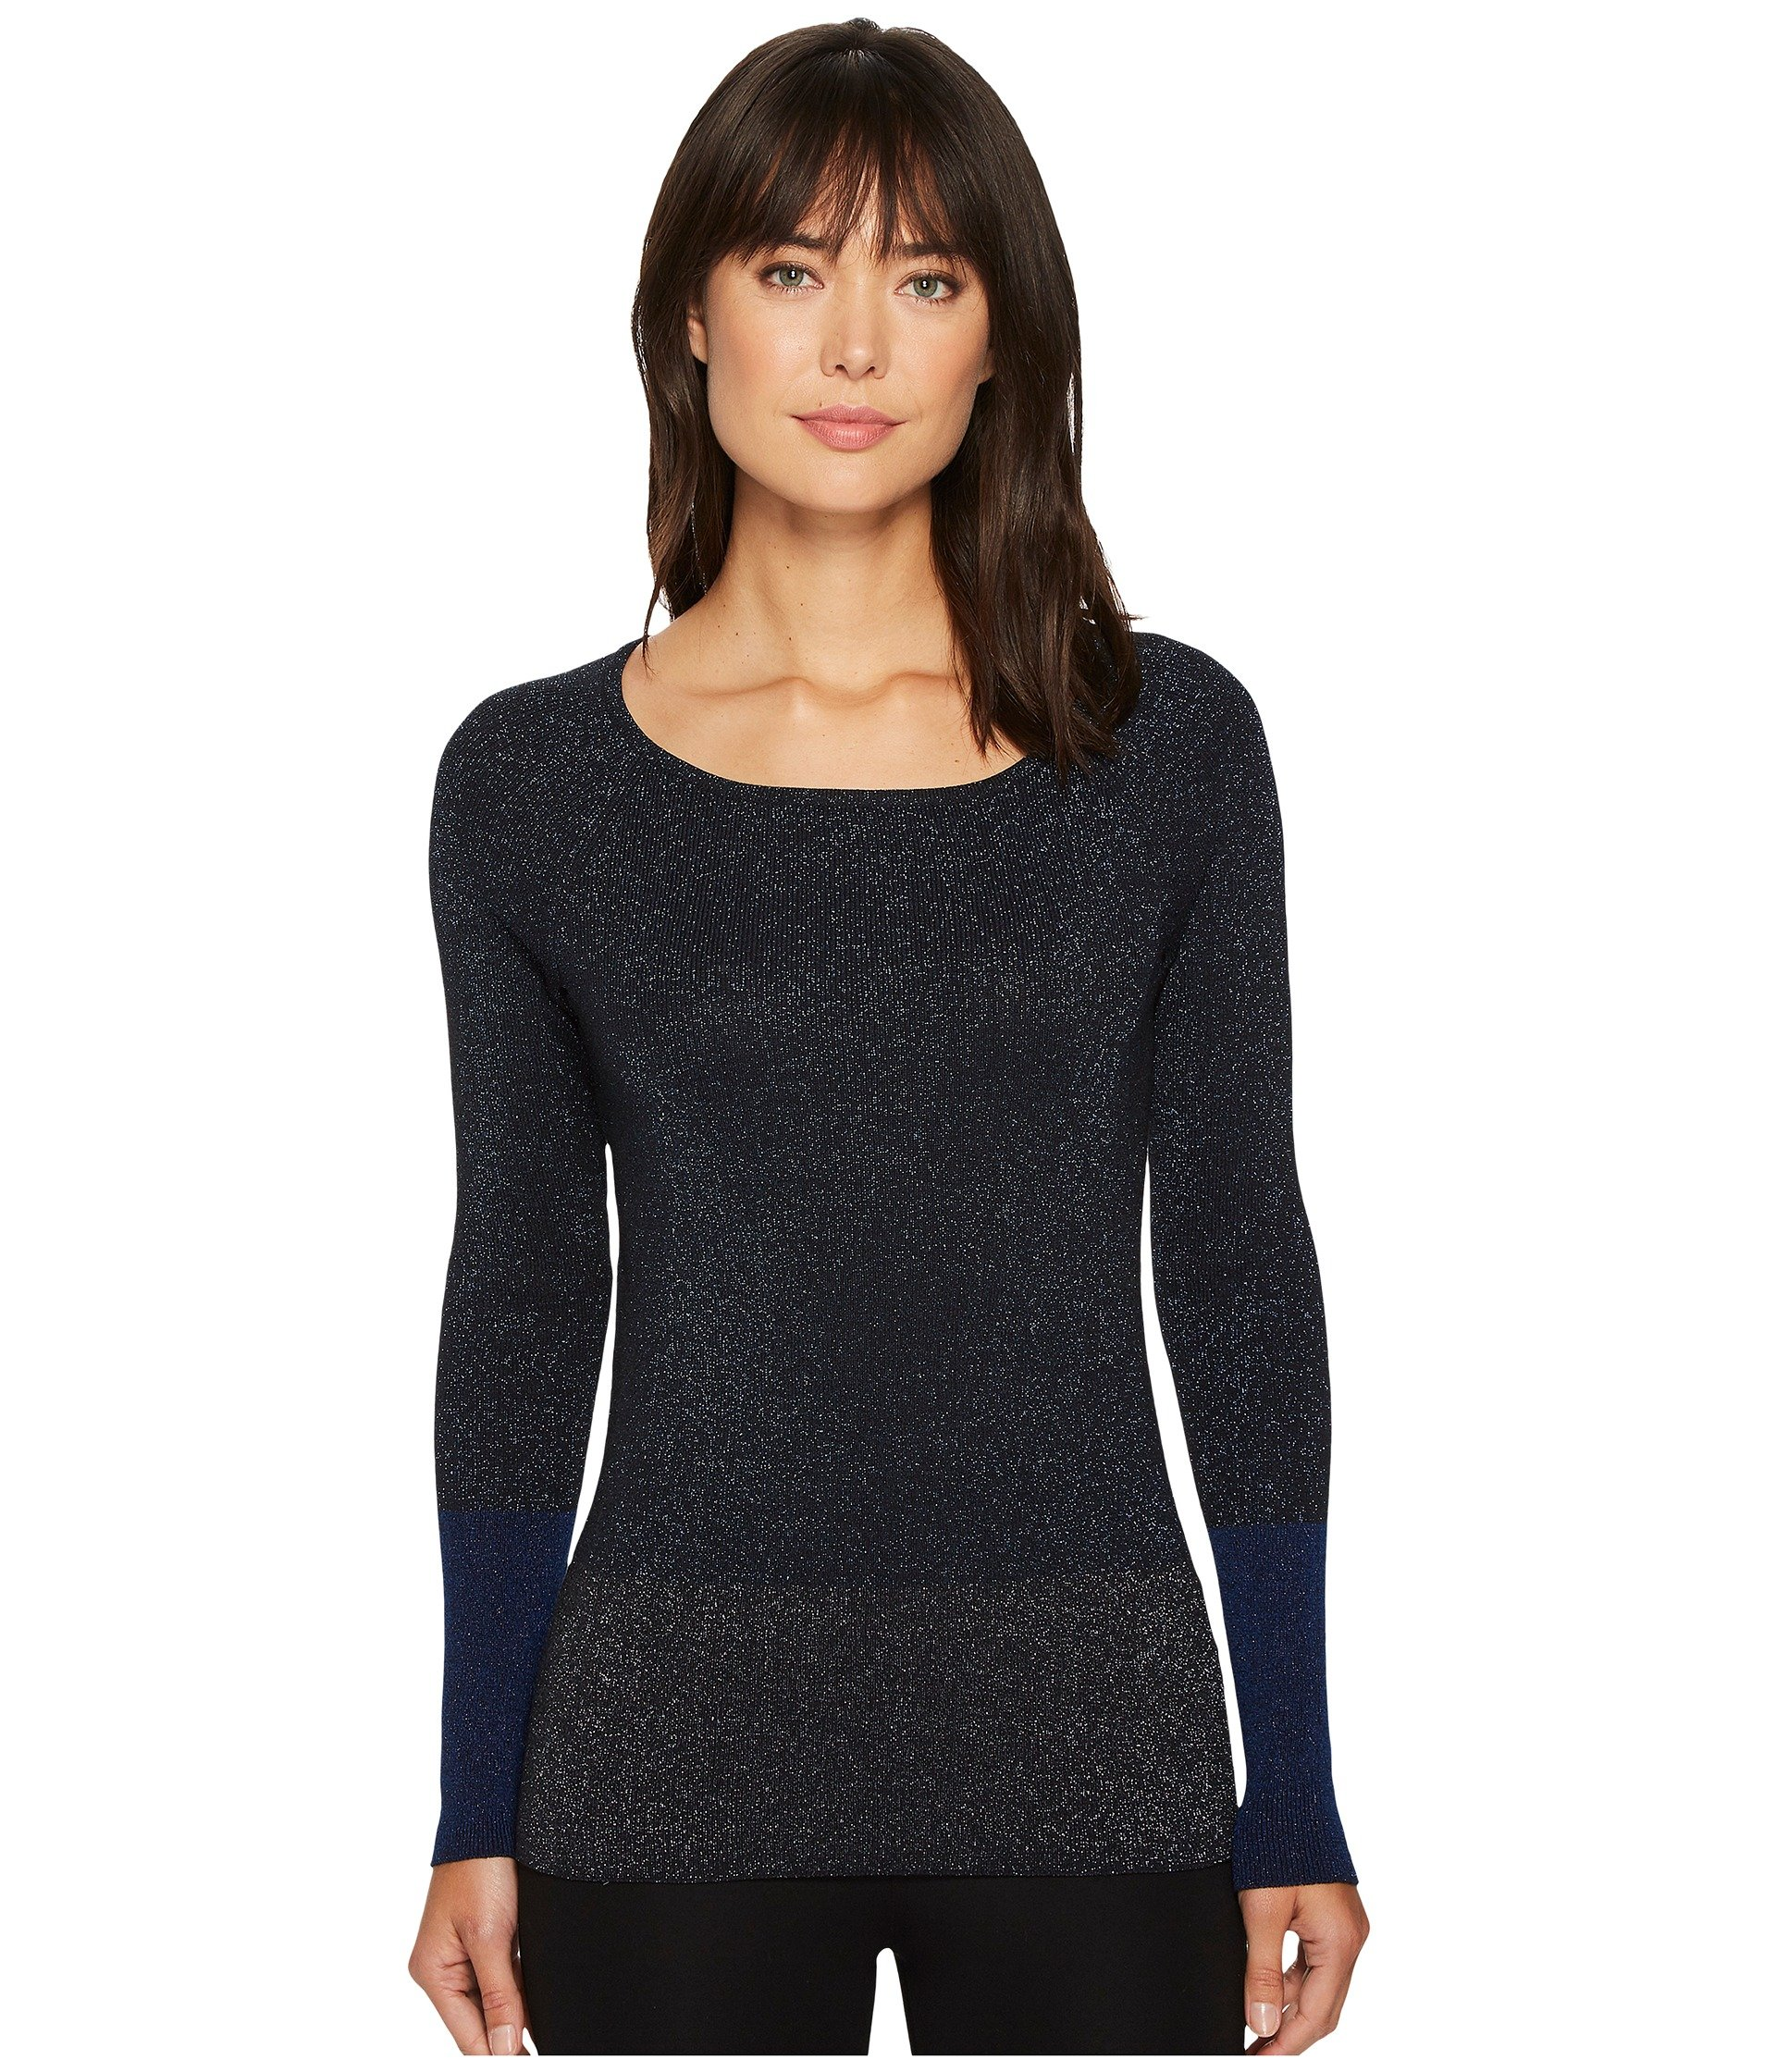 ELLEN TRACY Color Block Ribbed Sweater, Night Sky